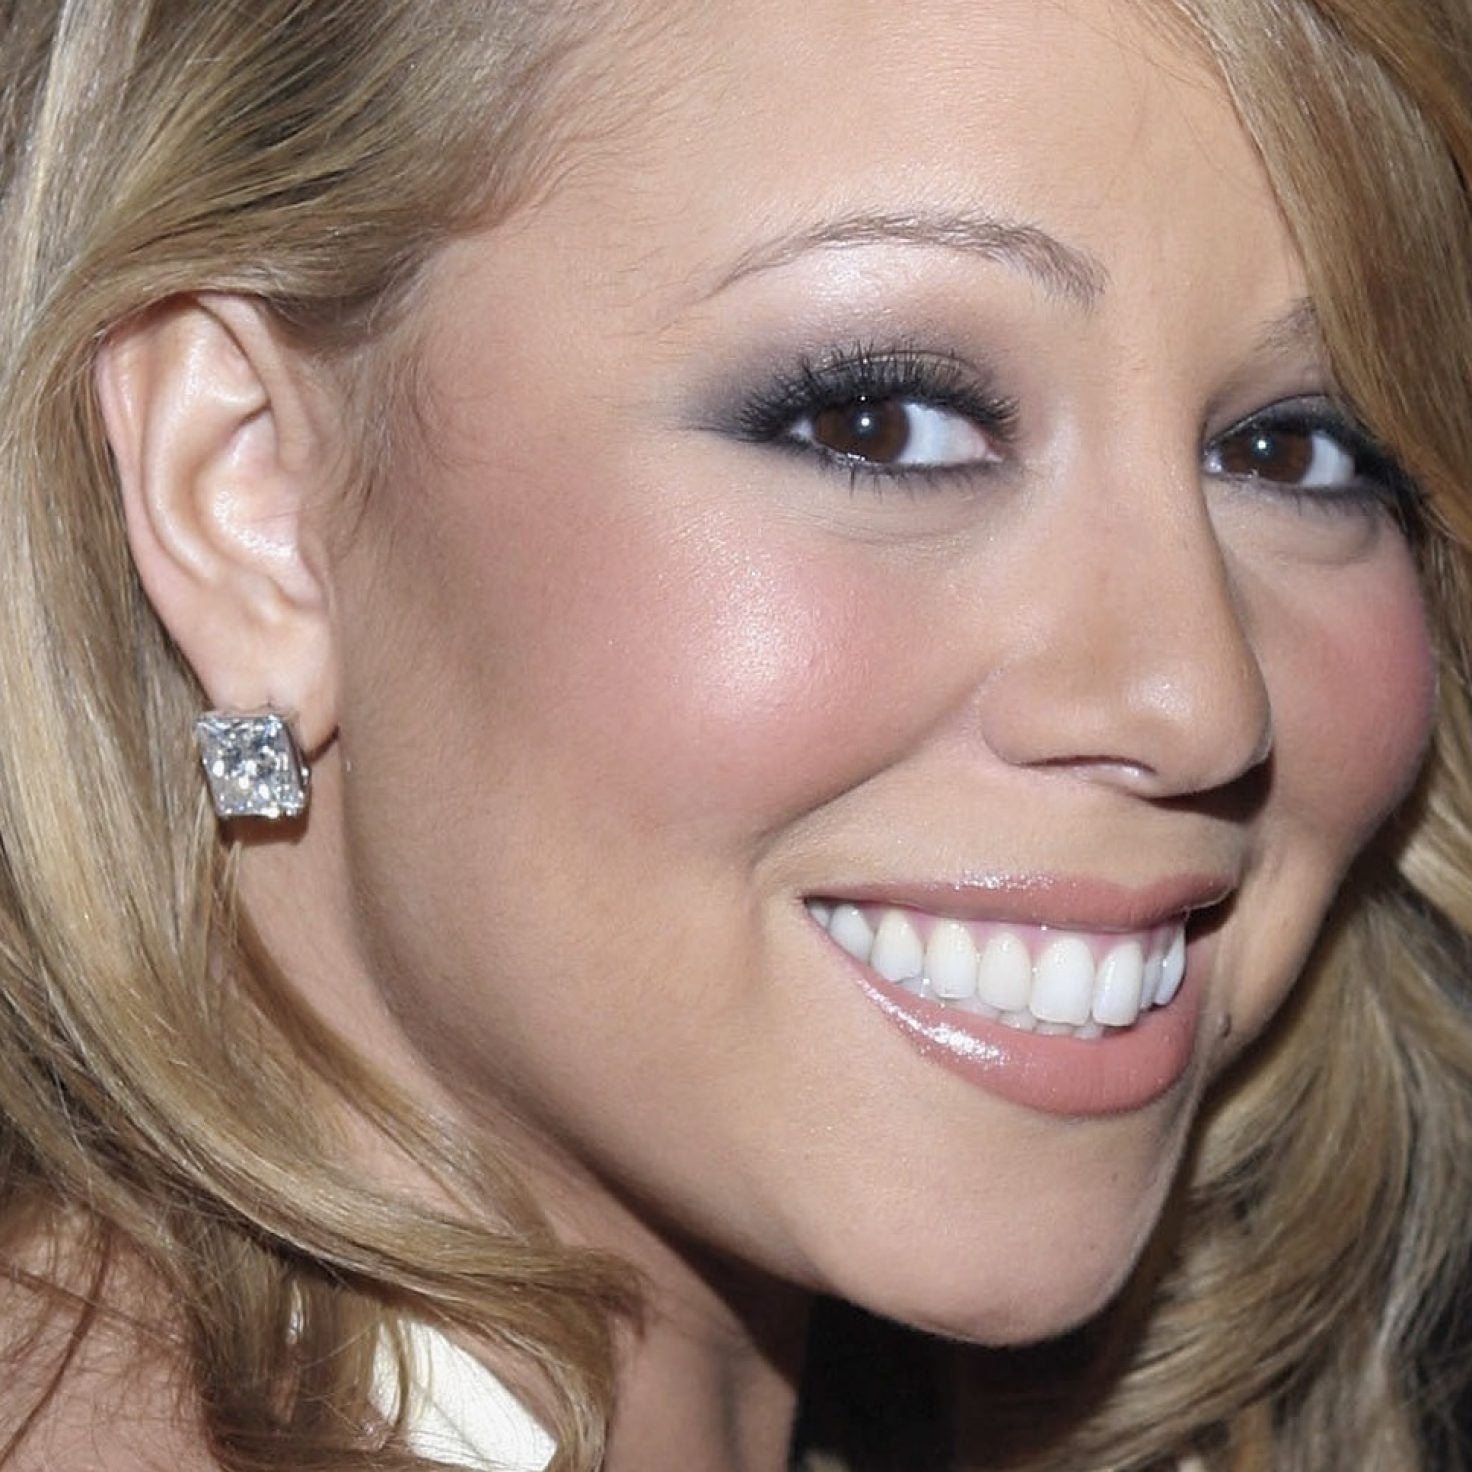 The Emancipation of Mariah Carey: Inside The Making Of Her ESSENCE Cover 15 Years Ago